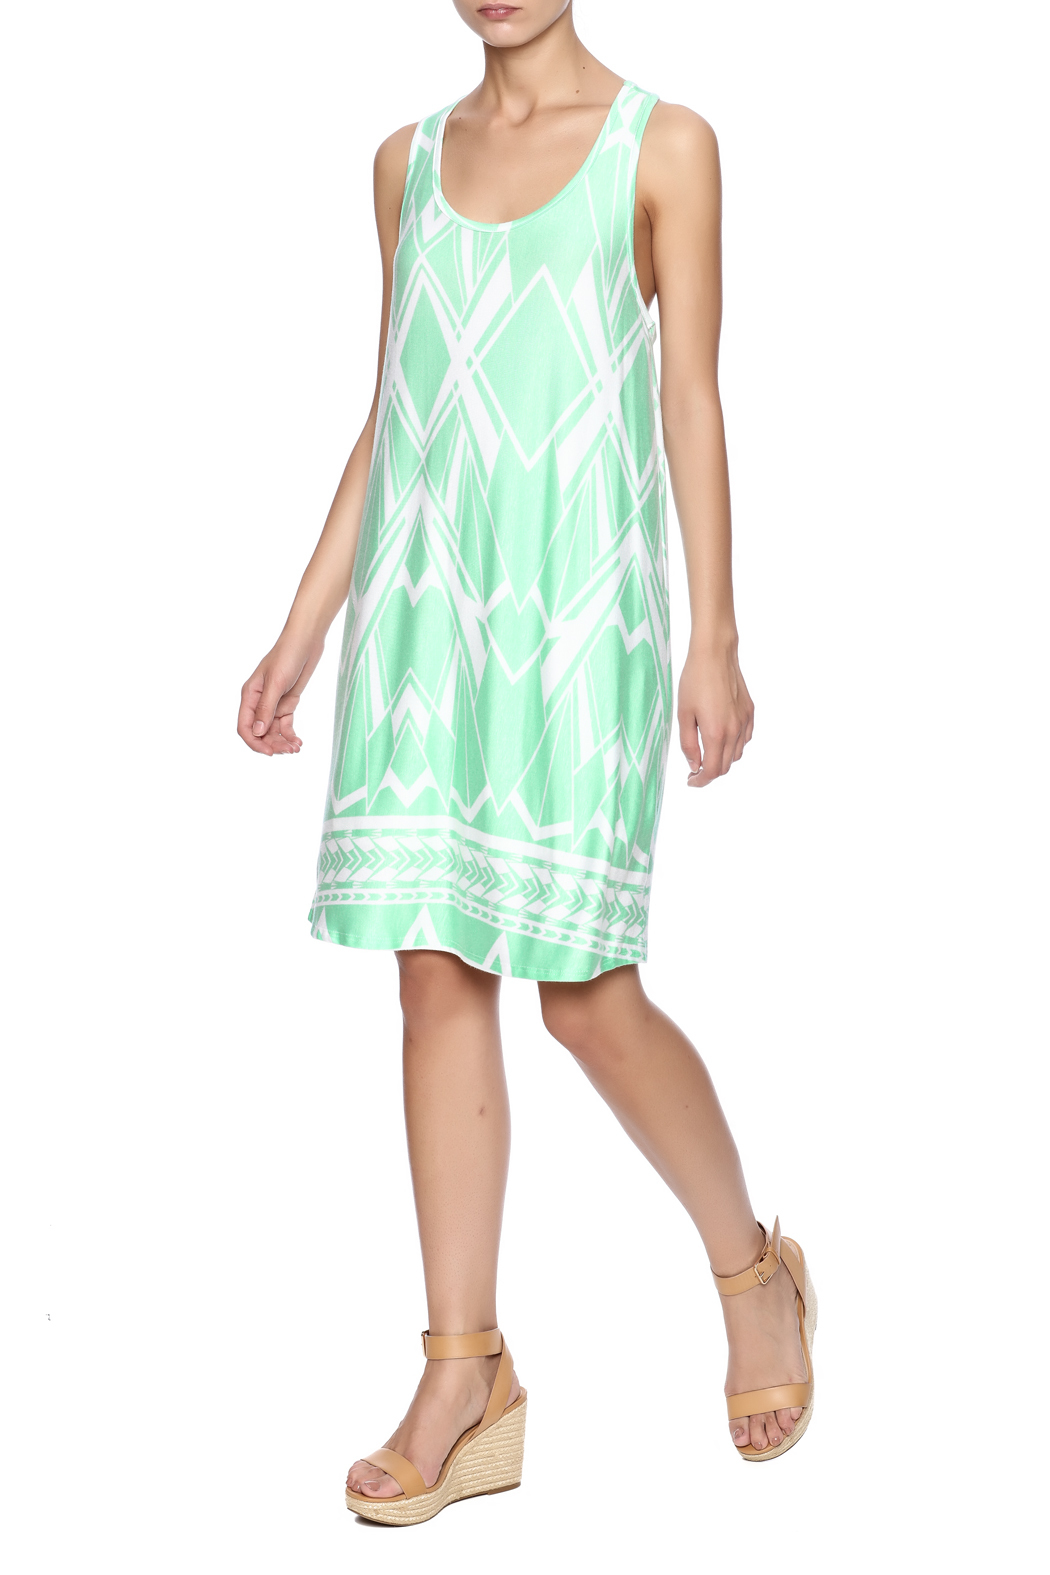 Fantastic Fawn Printed Mint Dress - Front Full Image